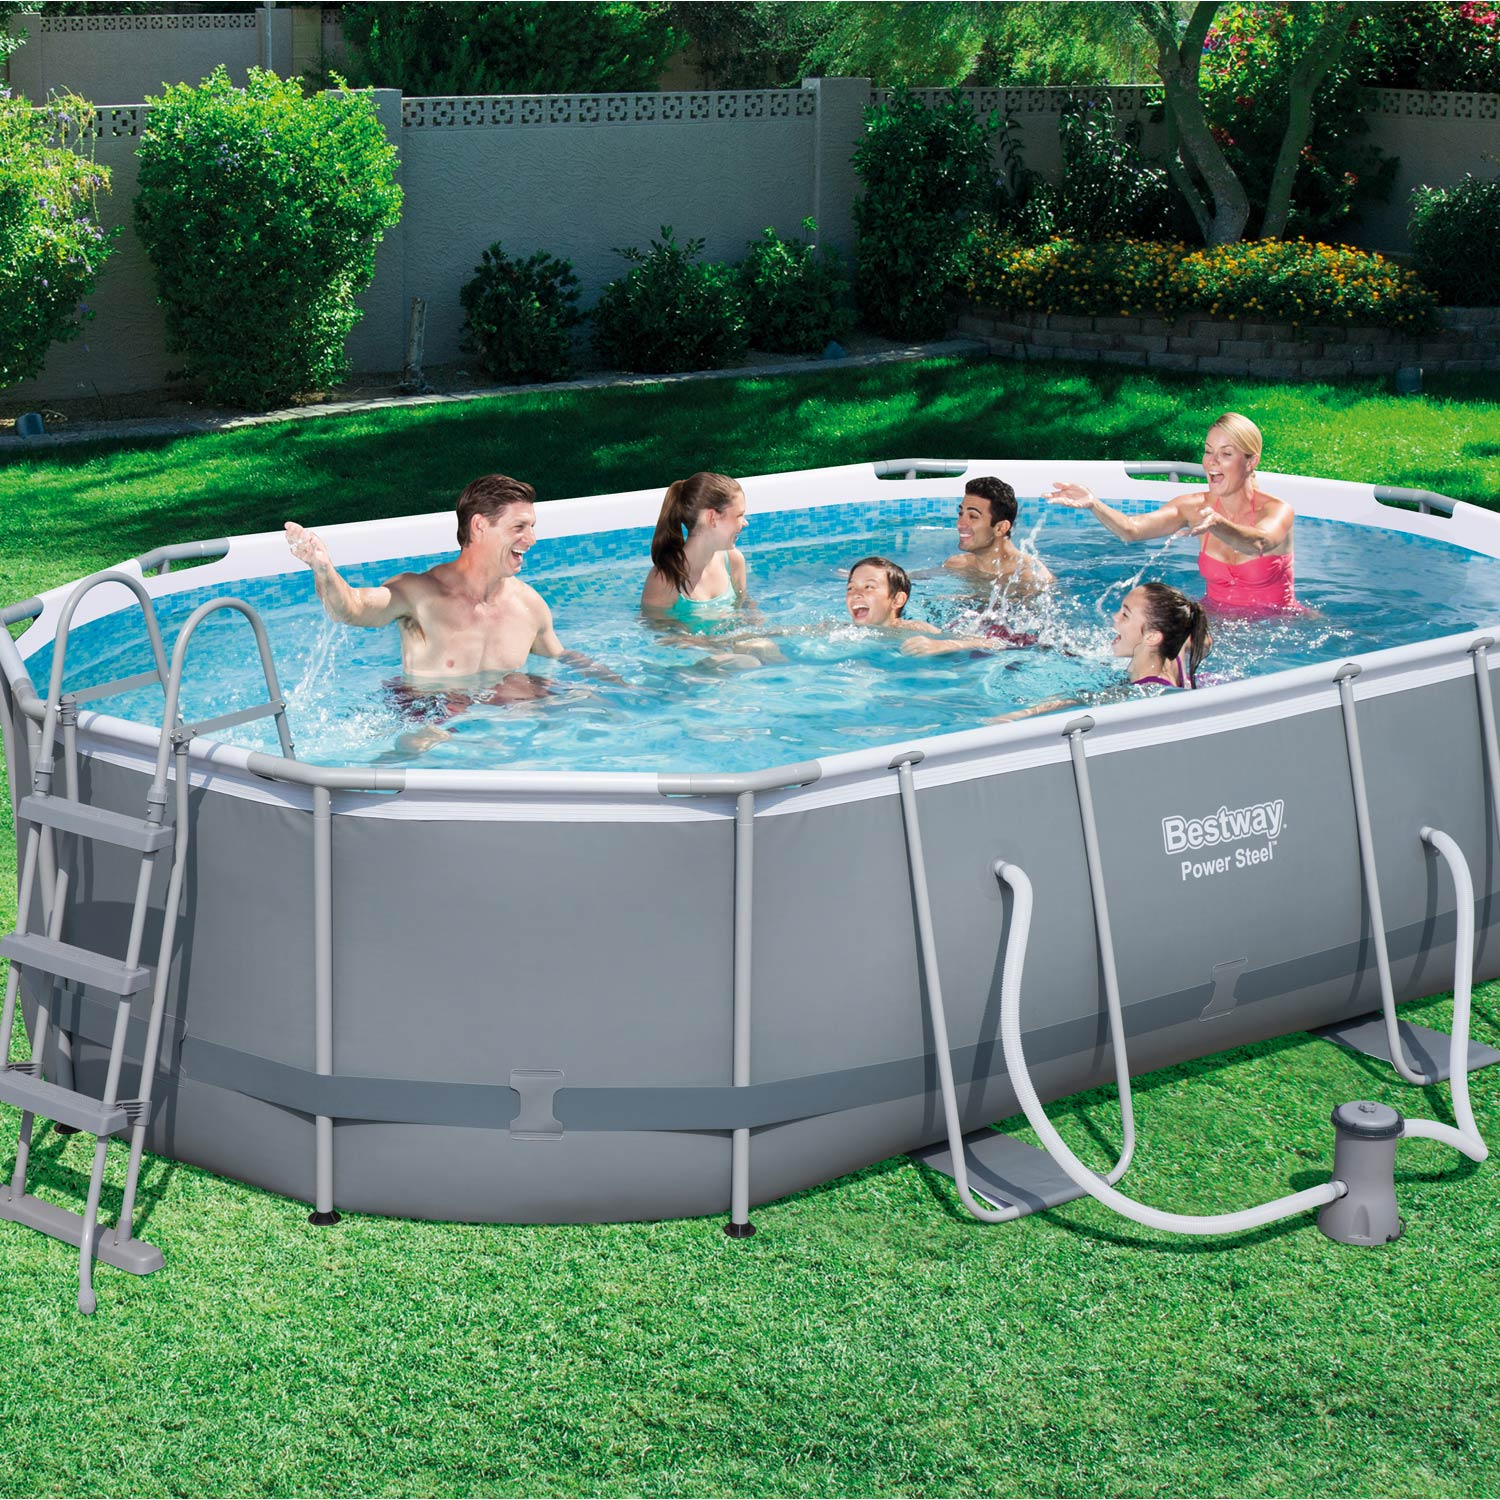 Piscine hors sol autoportante tubulaire bestway l x for Piscine plastique